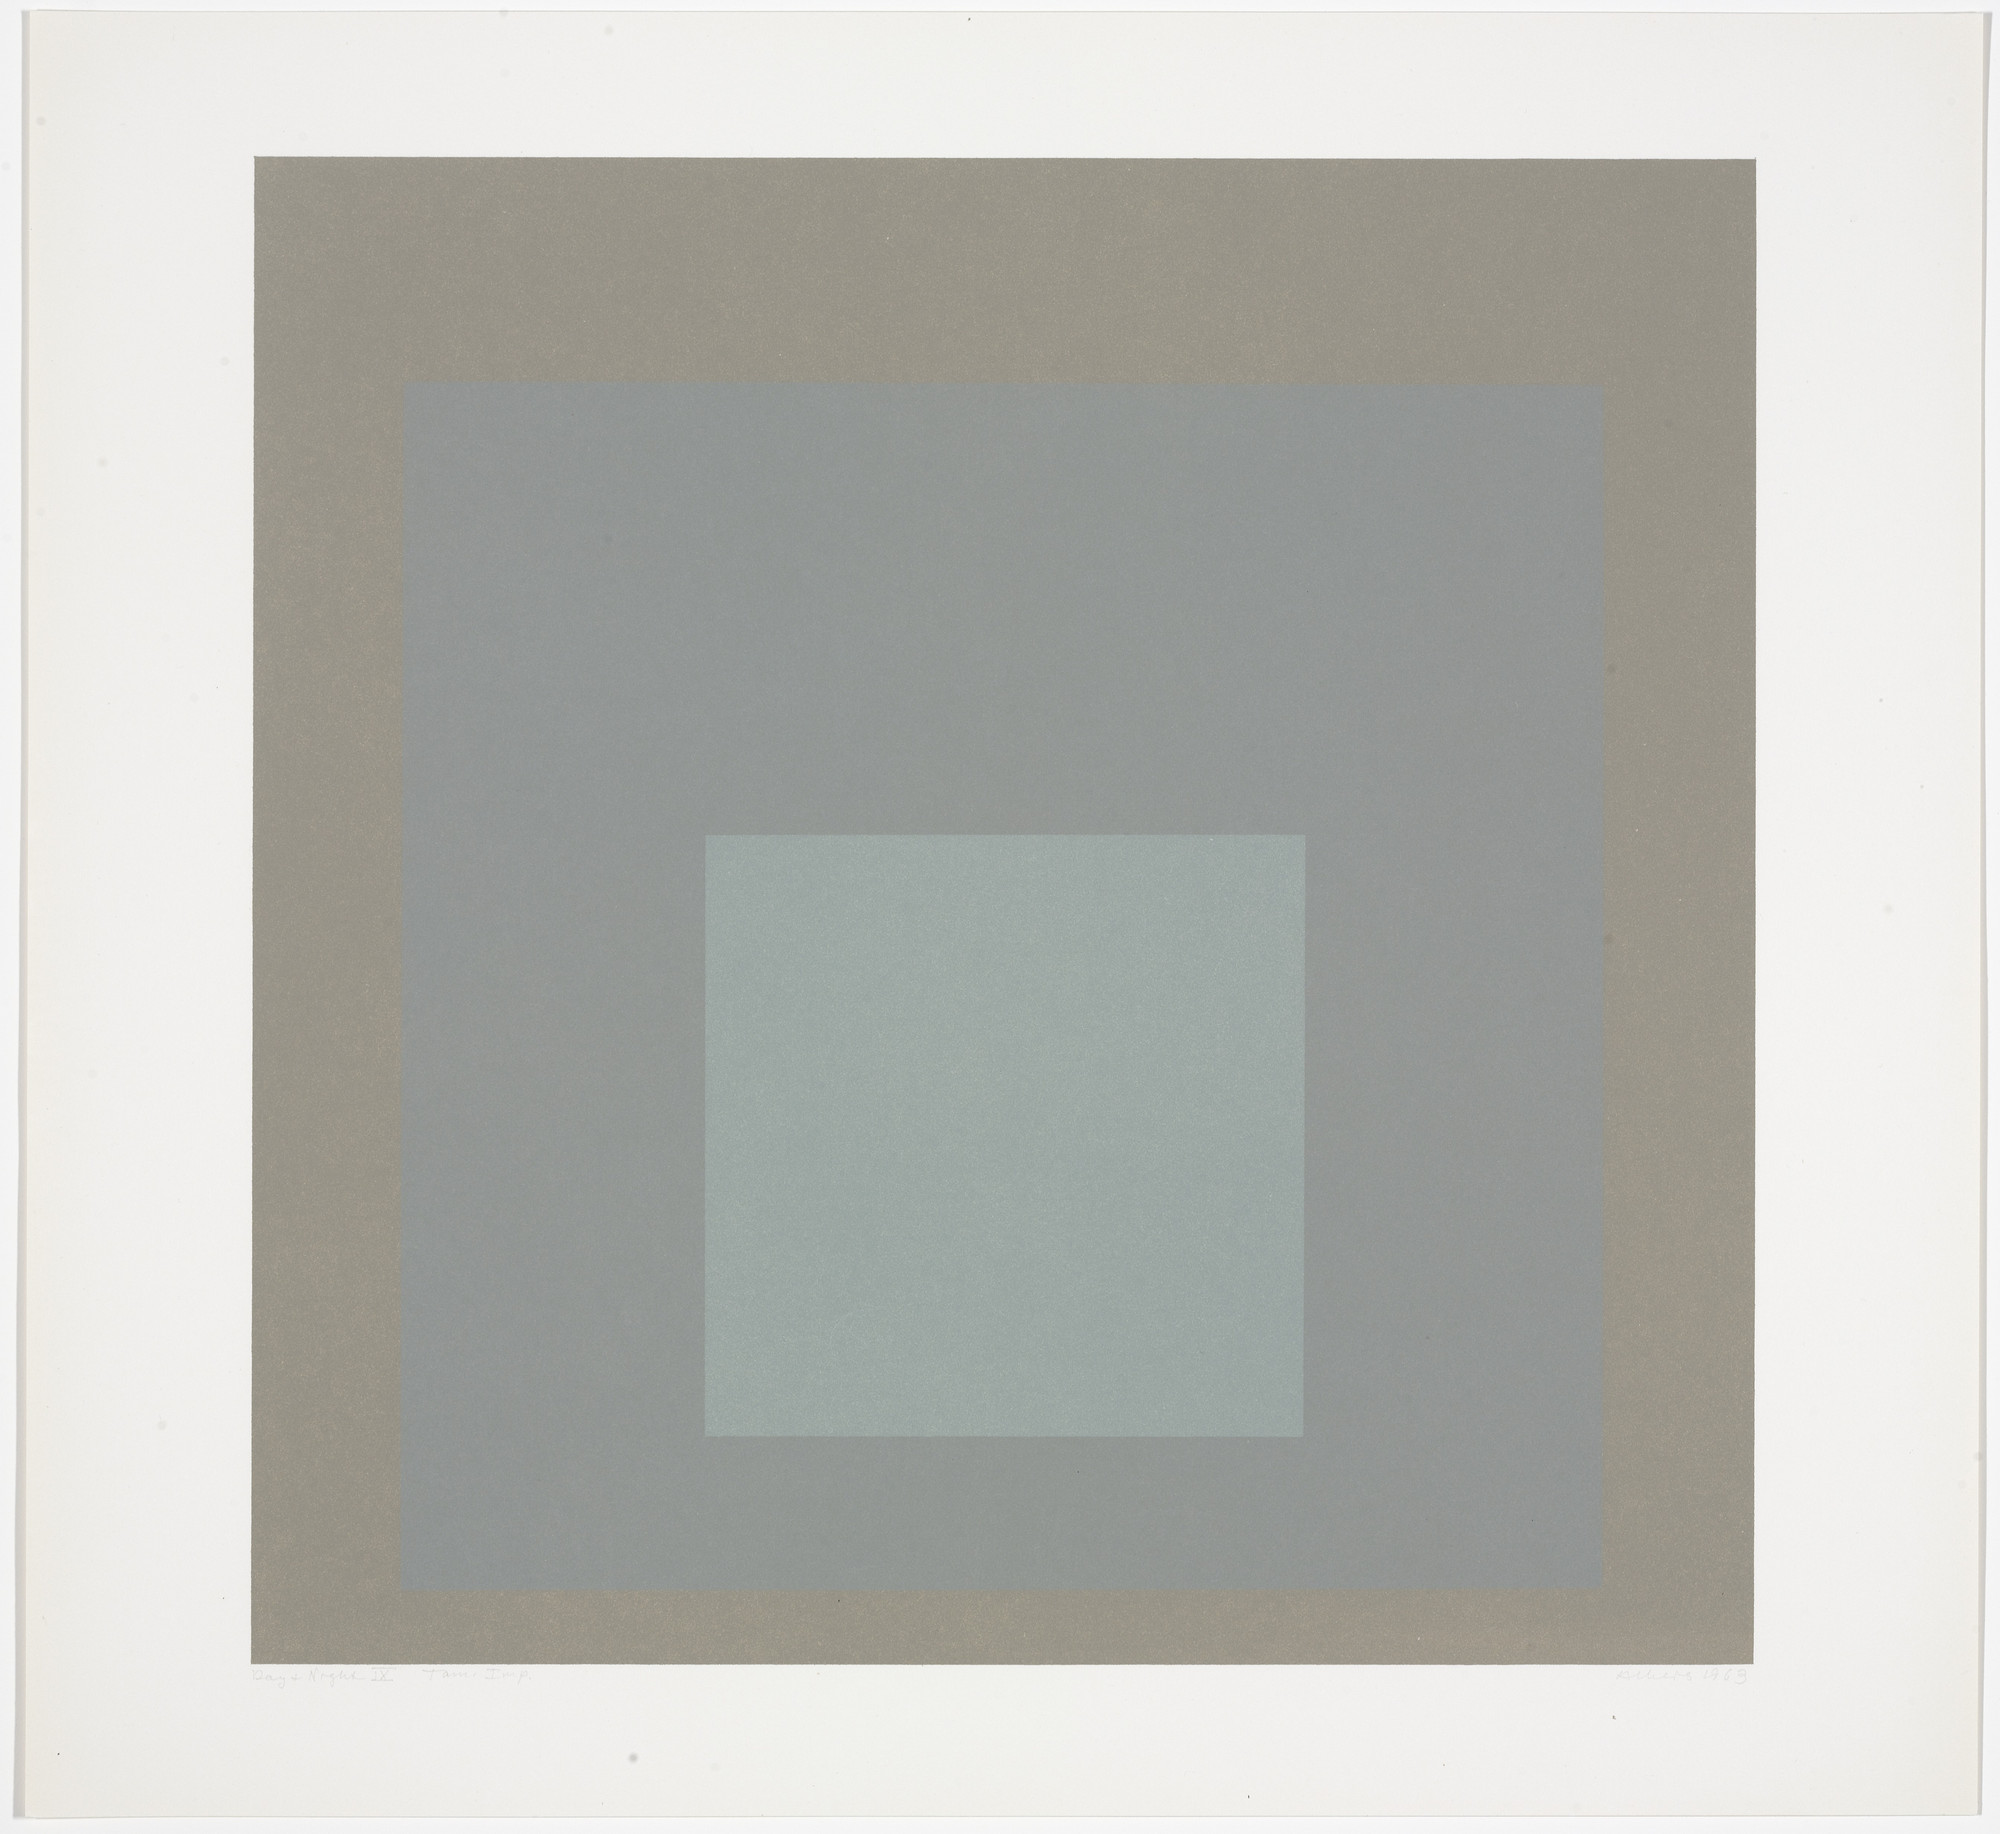 Josef Albers. Day + Night IX from Day and Night: Homage to the Square. 1963